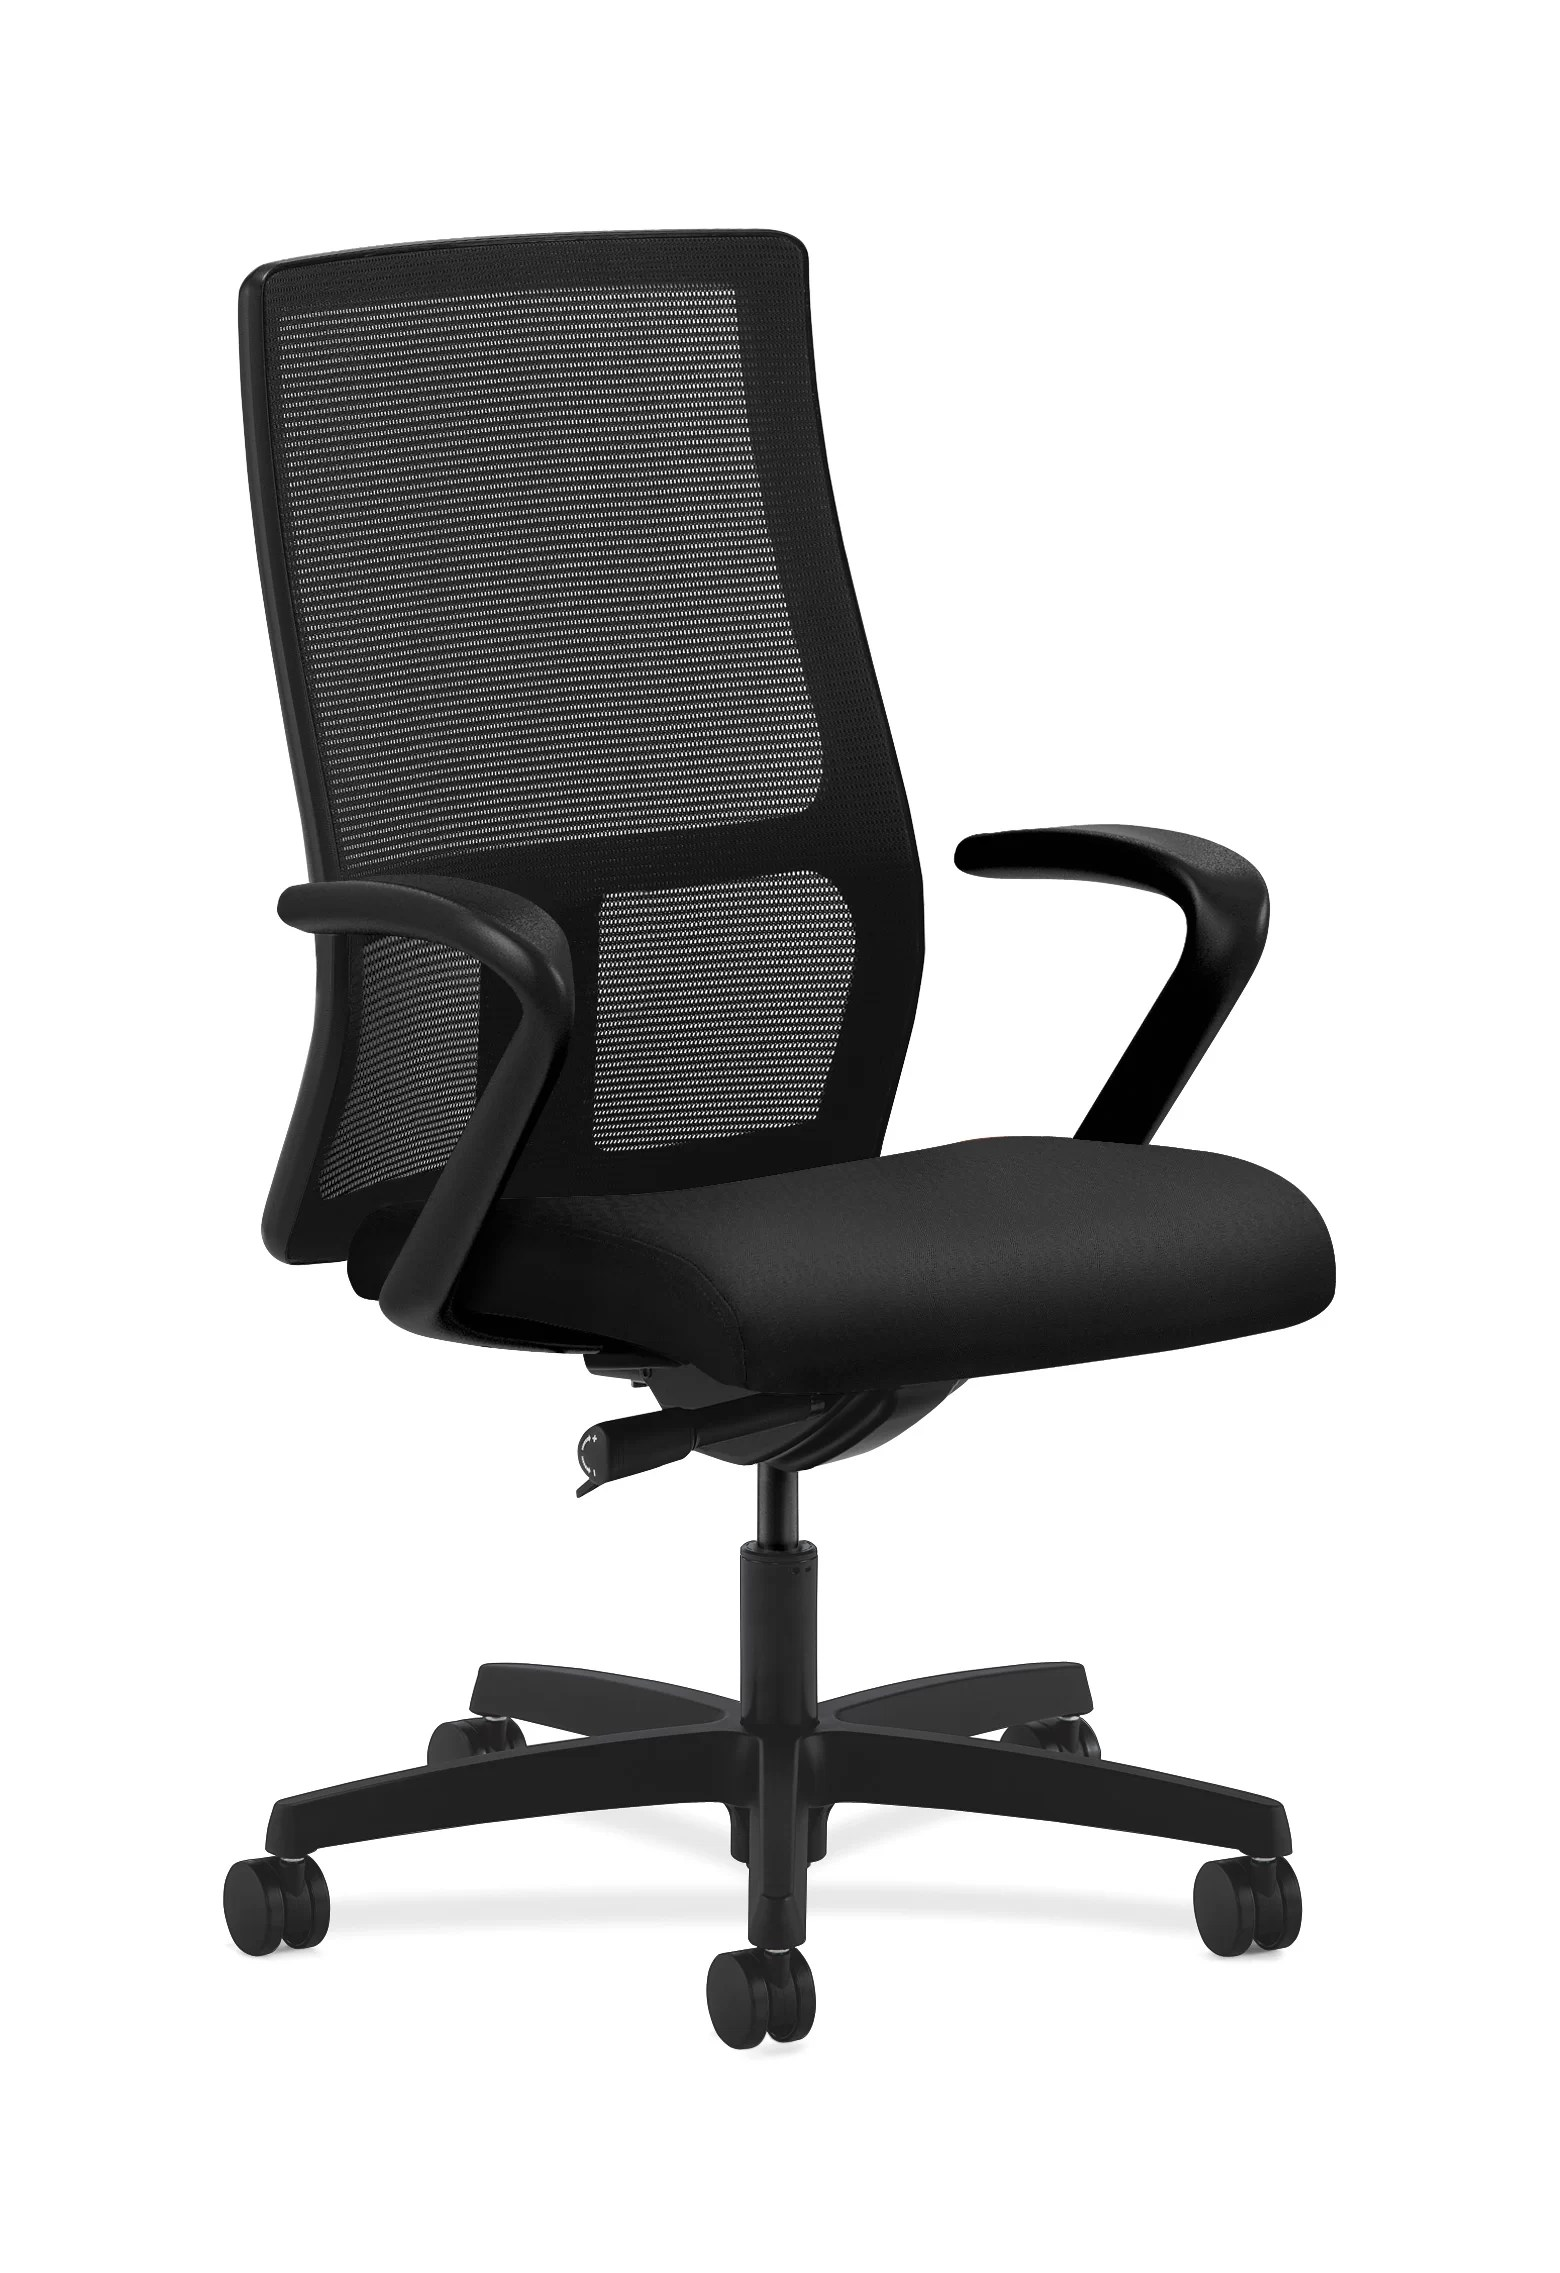 hon ignition 2 0 chair review braun lift parts mesh desk reviews wayfair